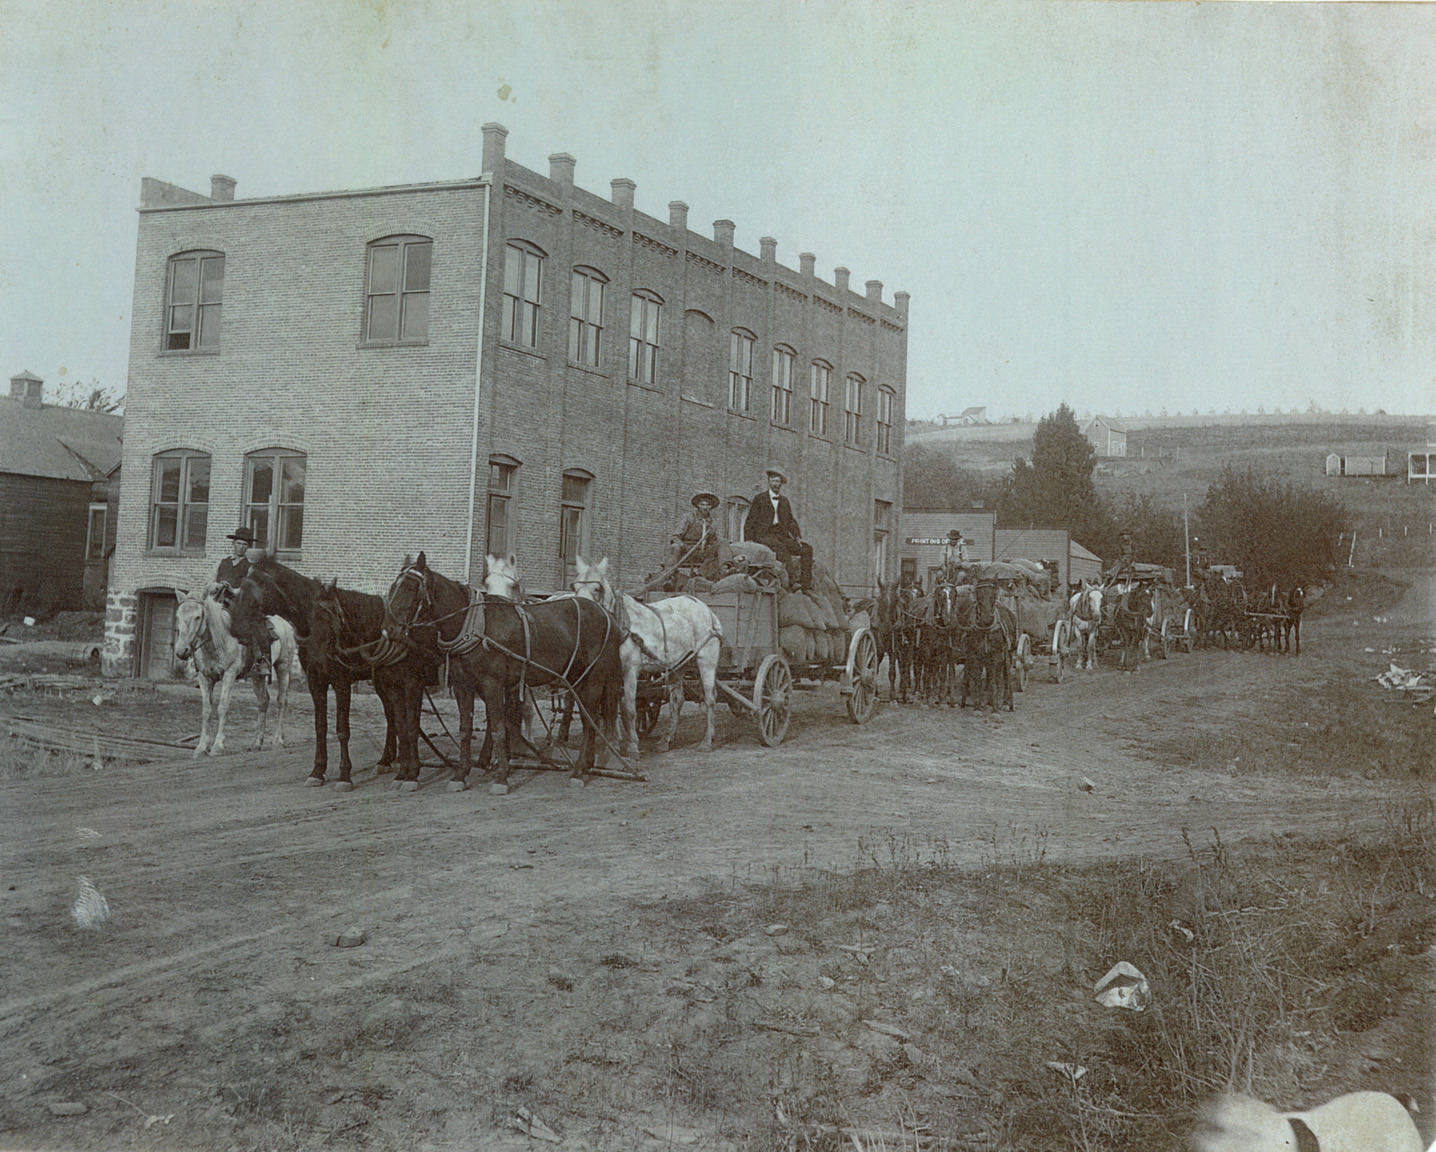 Horse_teams_in_Rosalia_Washington_circa_1920